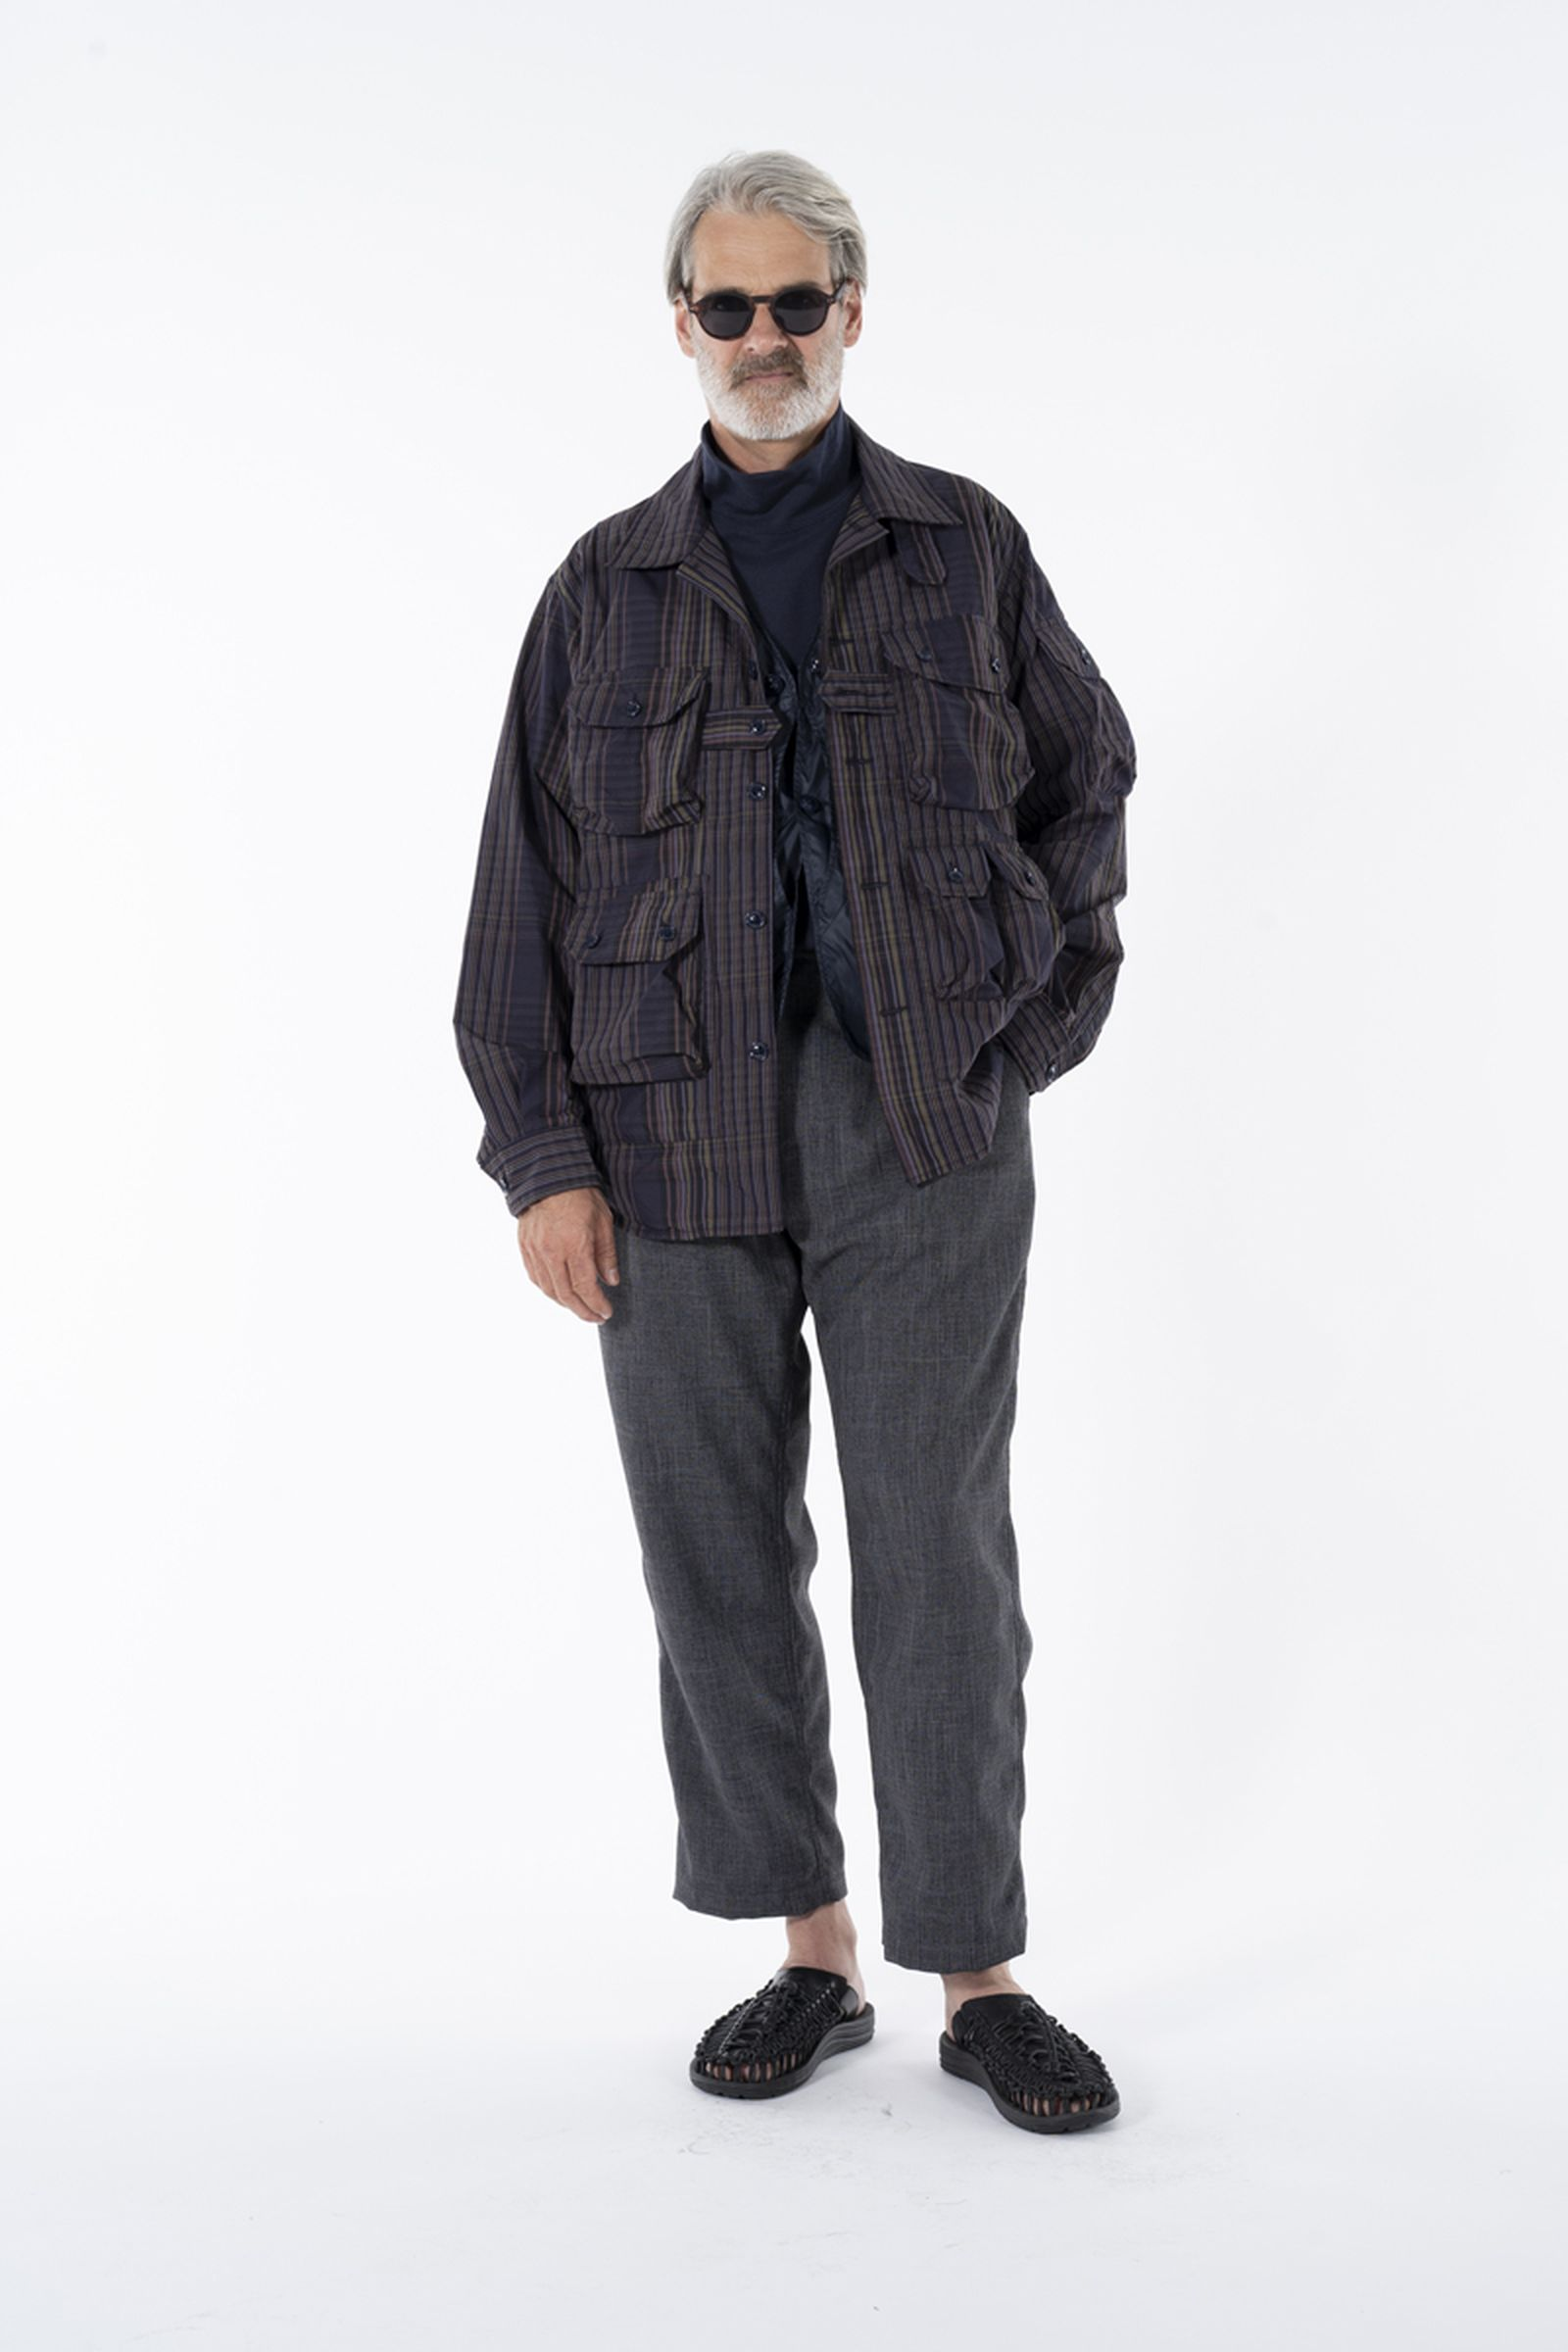 engineered-garments-ss21-39